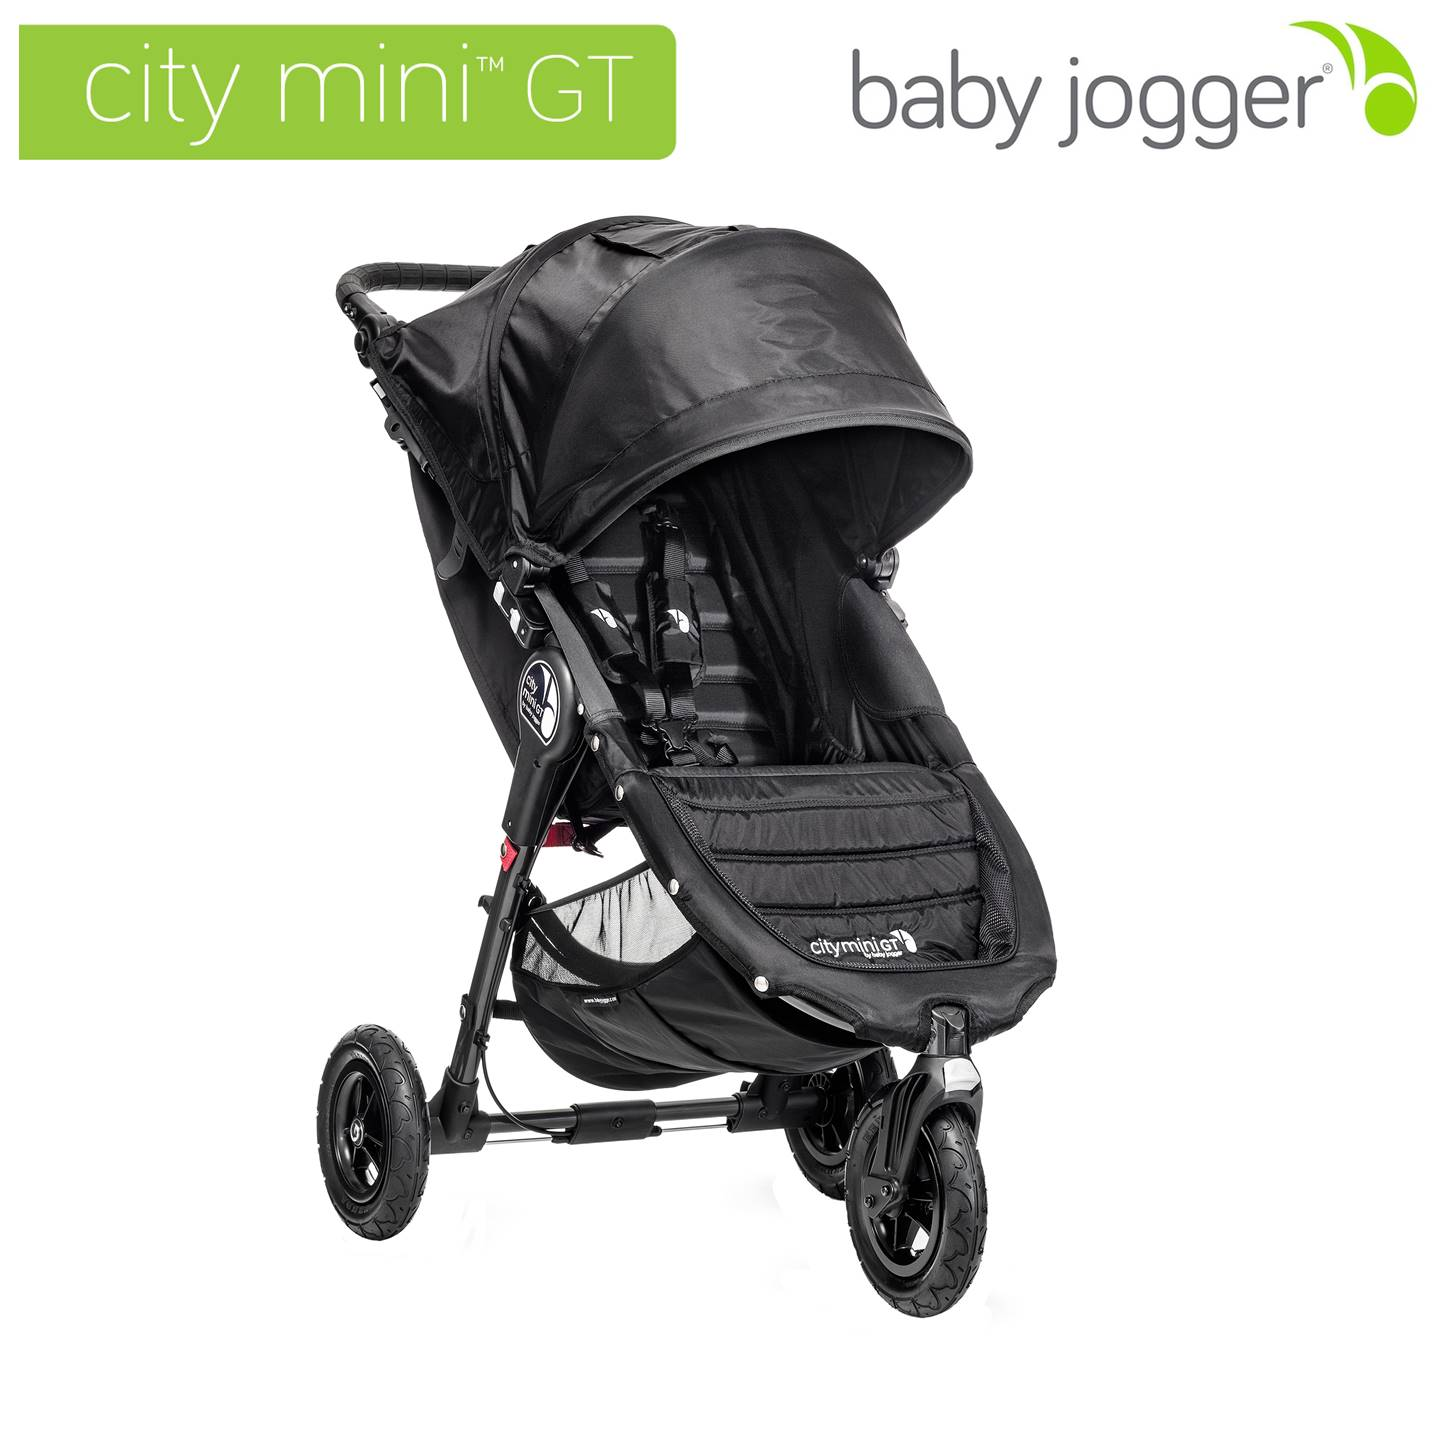 BJ420BJ1541000 Baby Jogger City Mini Gt Black (1)